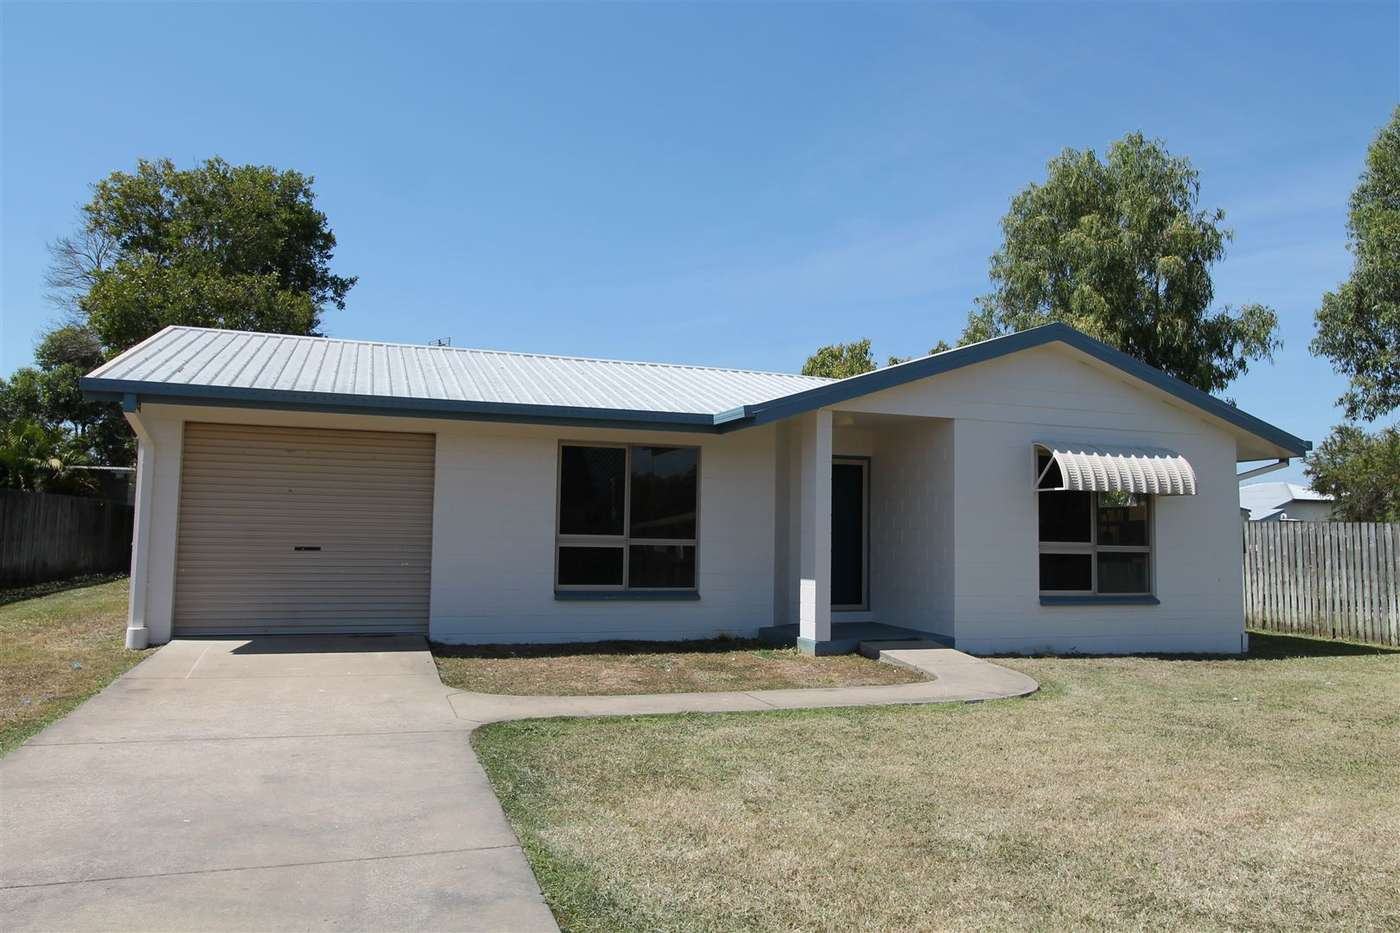 Main view of Homely house listing, 8 Strathdee Court, Ayr, QLD 4807